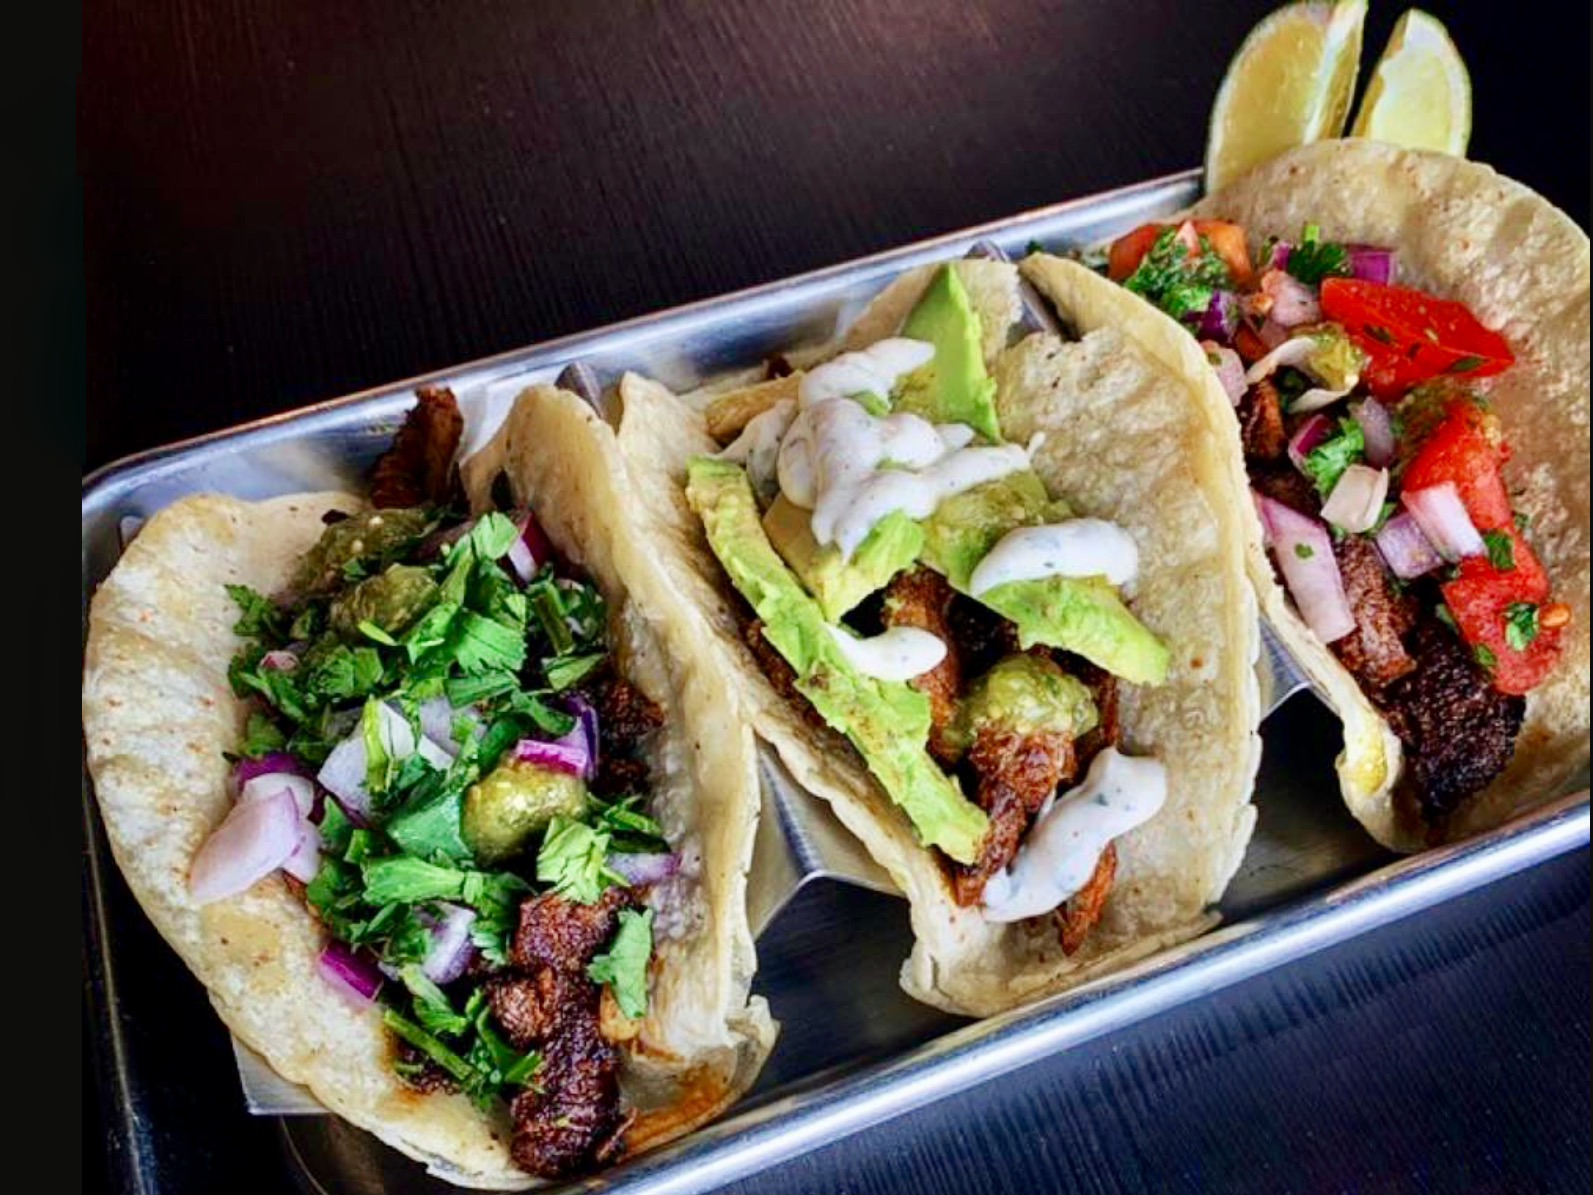 Lucky's Spitfire's tacos